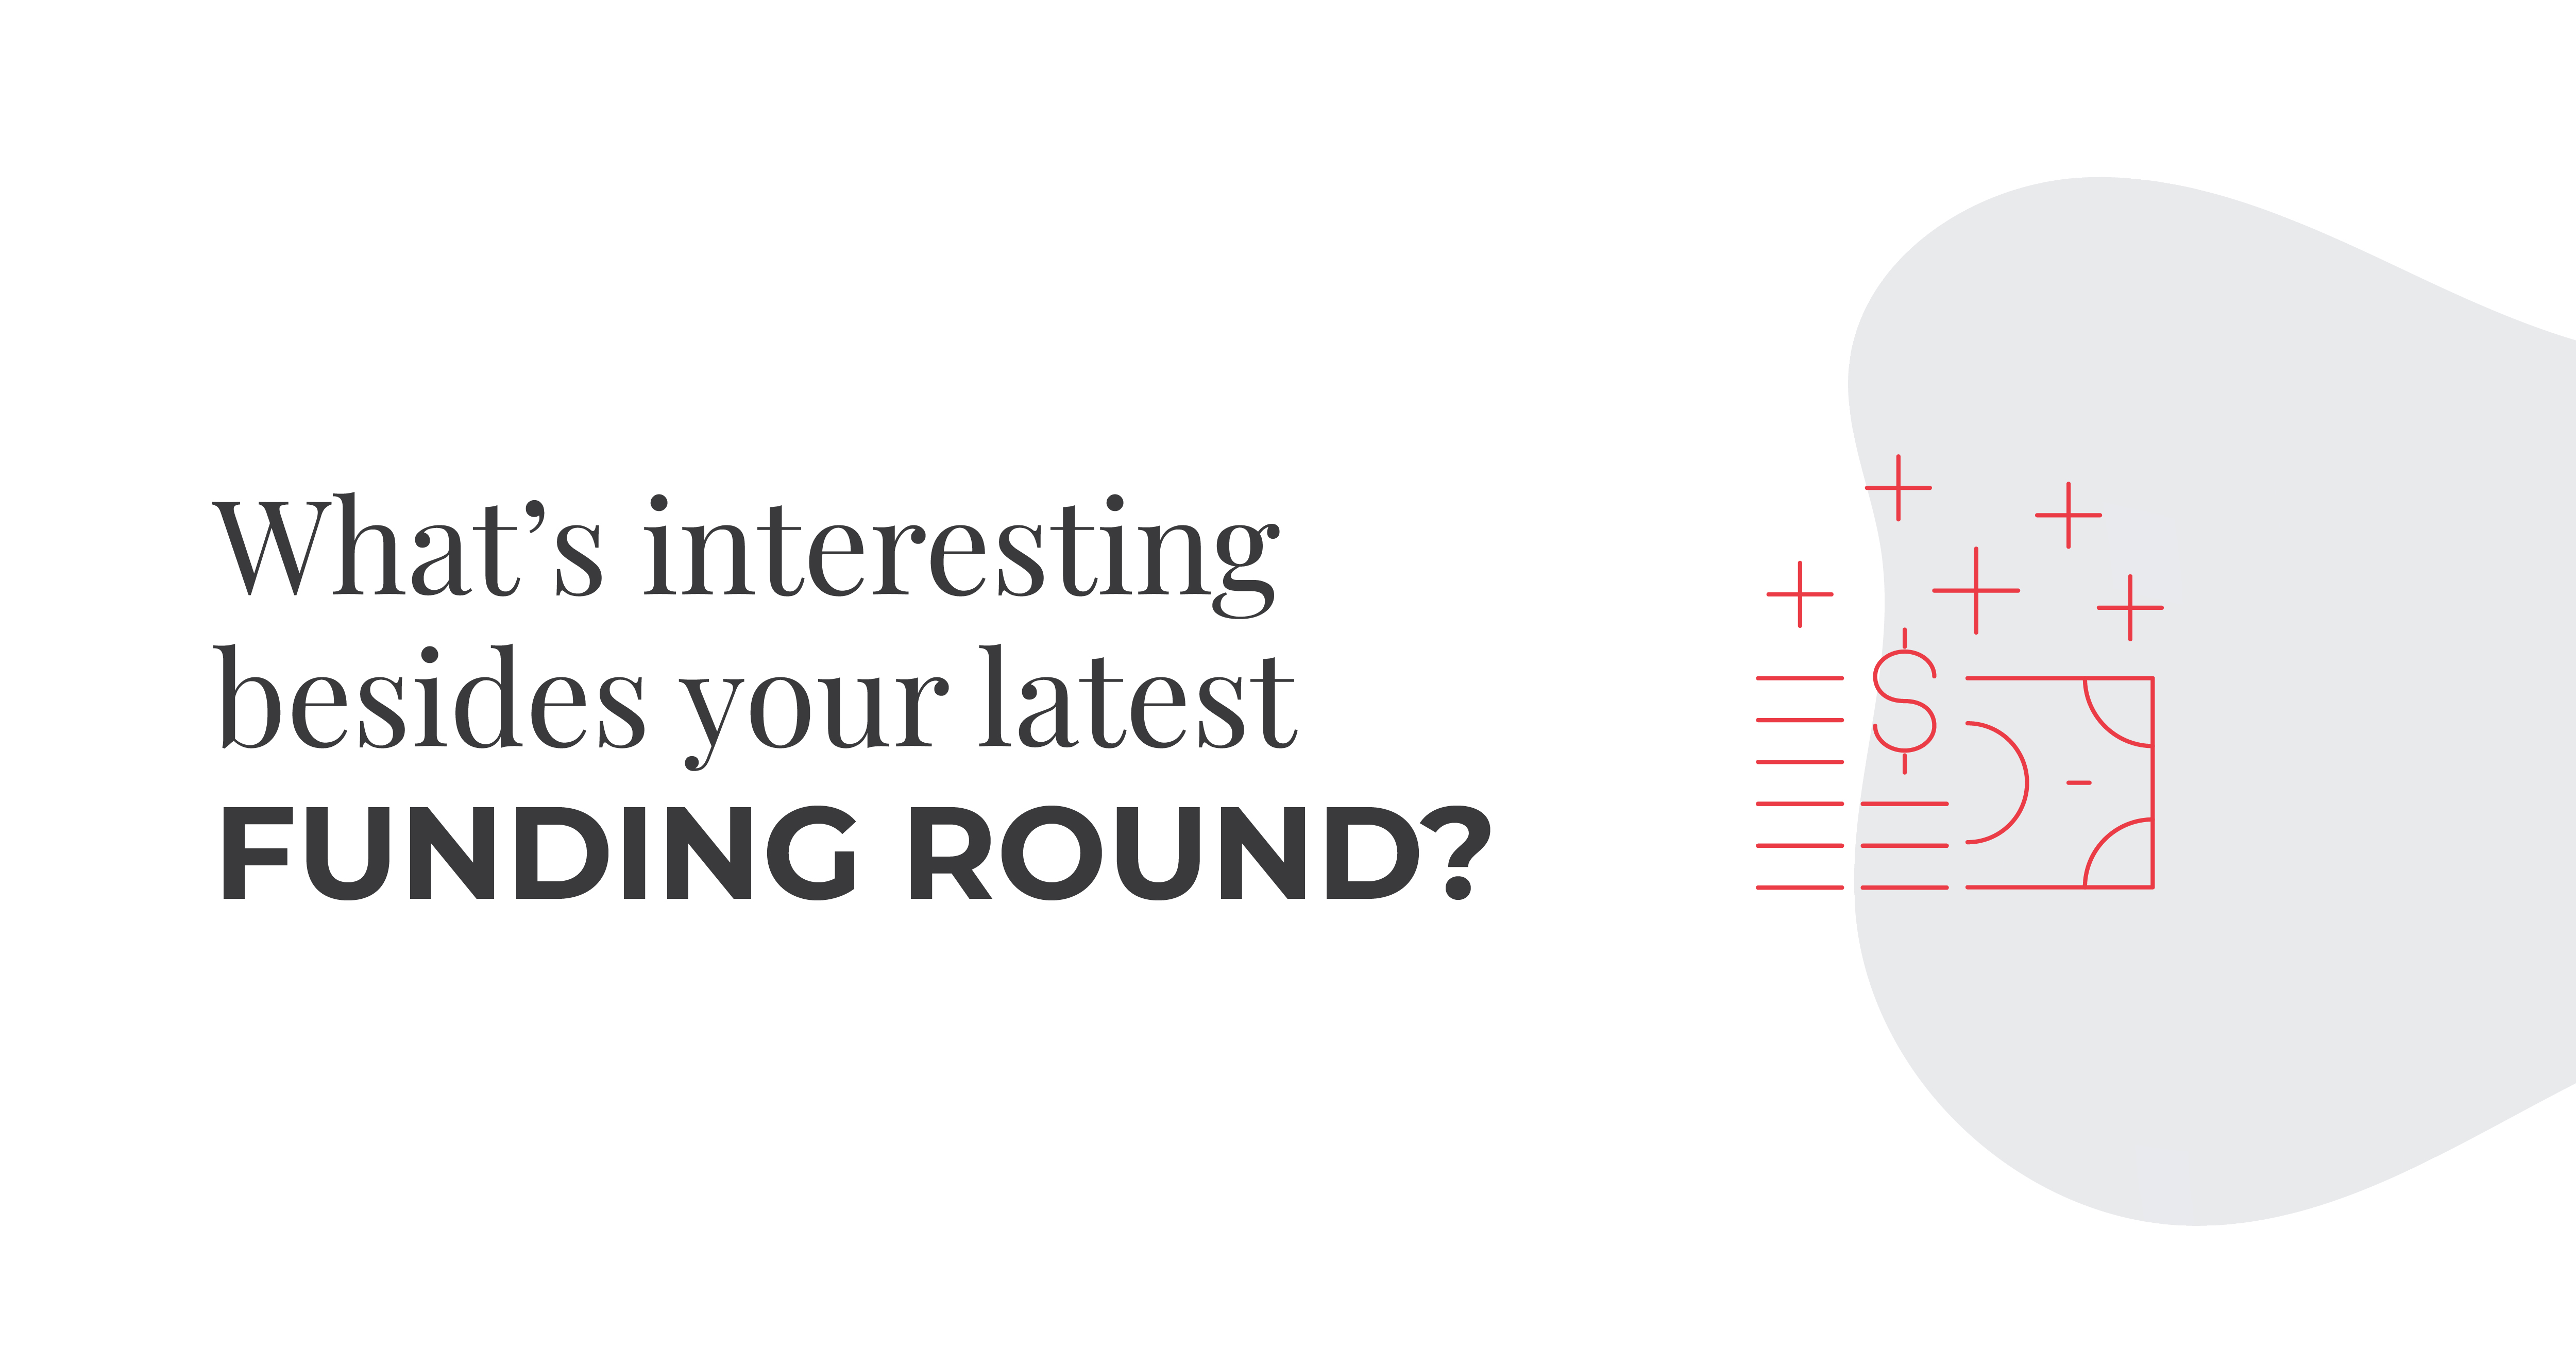 whats interesting besides your latest funding round